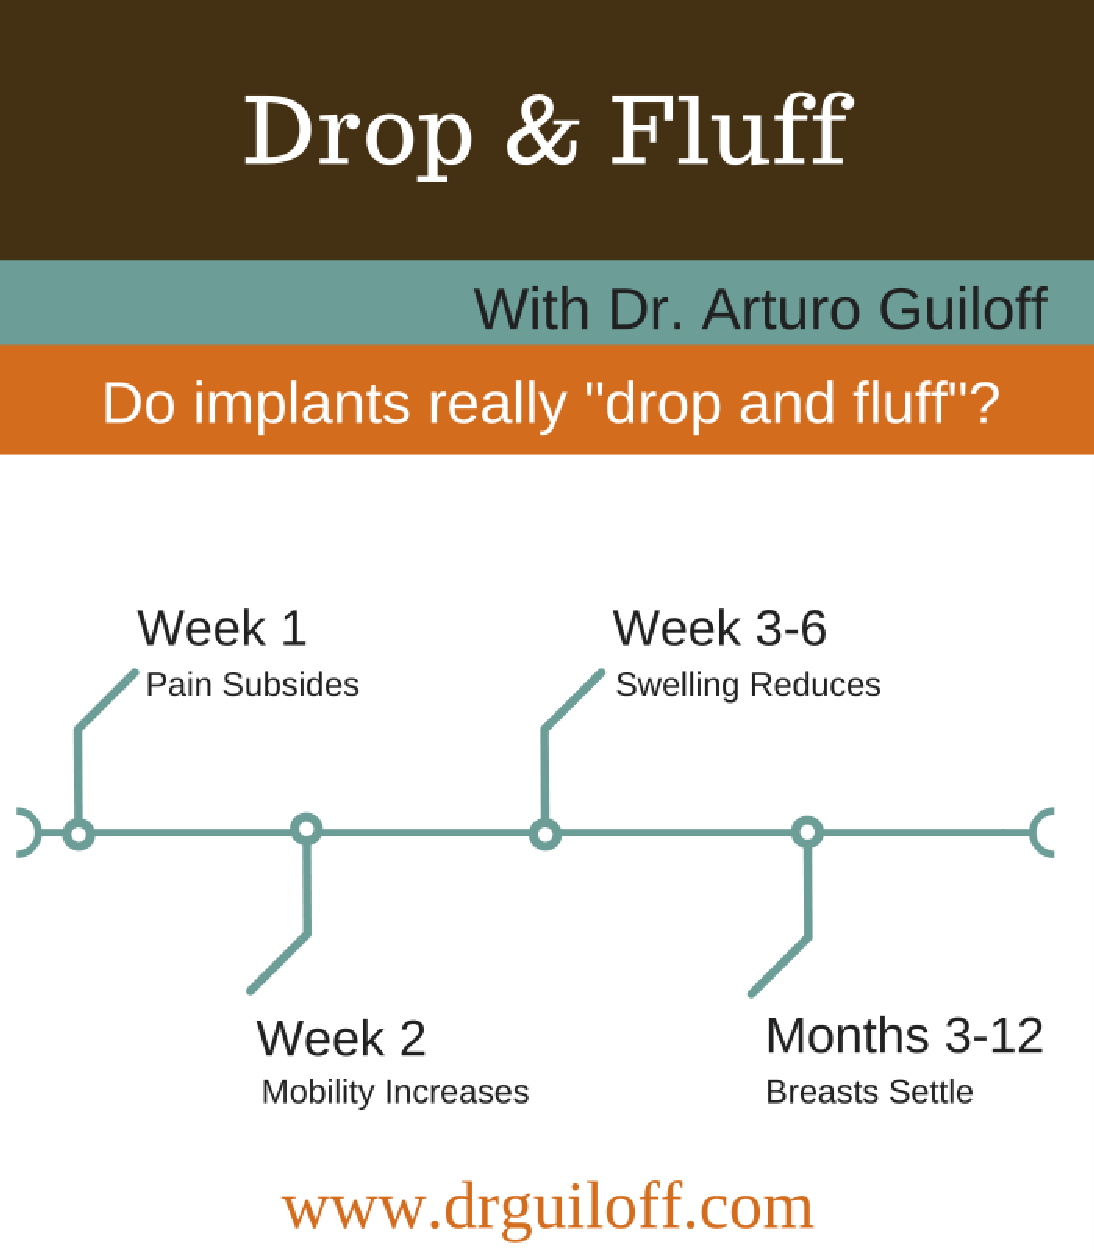 When Do Implants Really Drop And Fluff